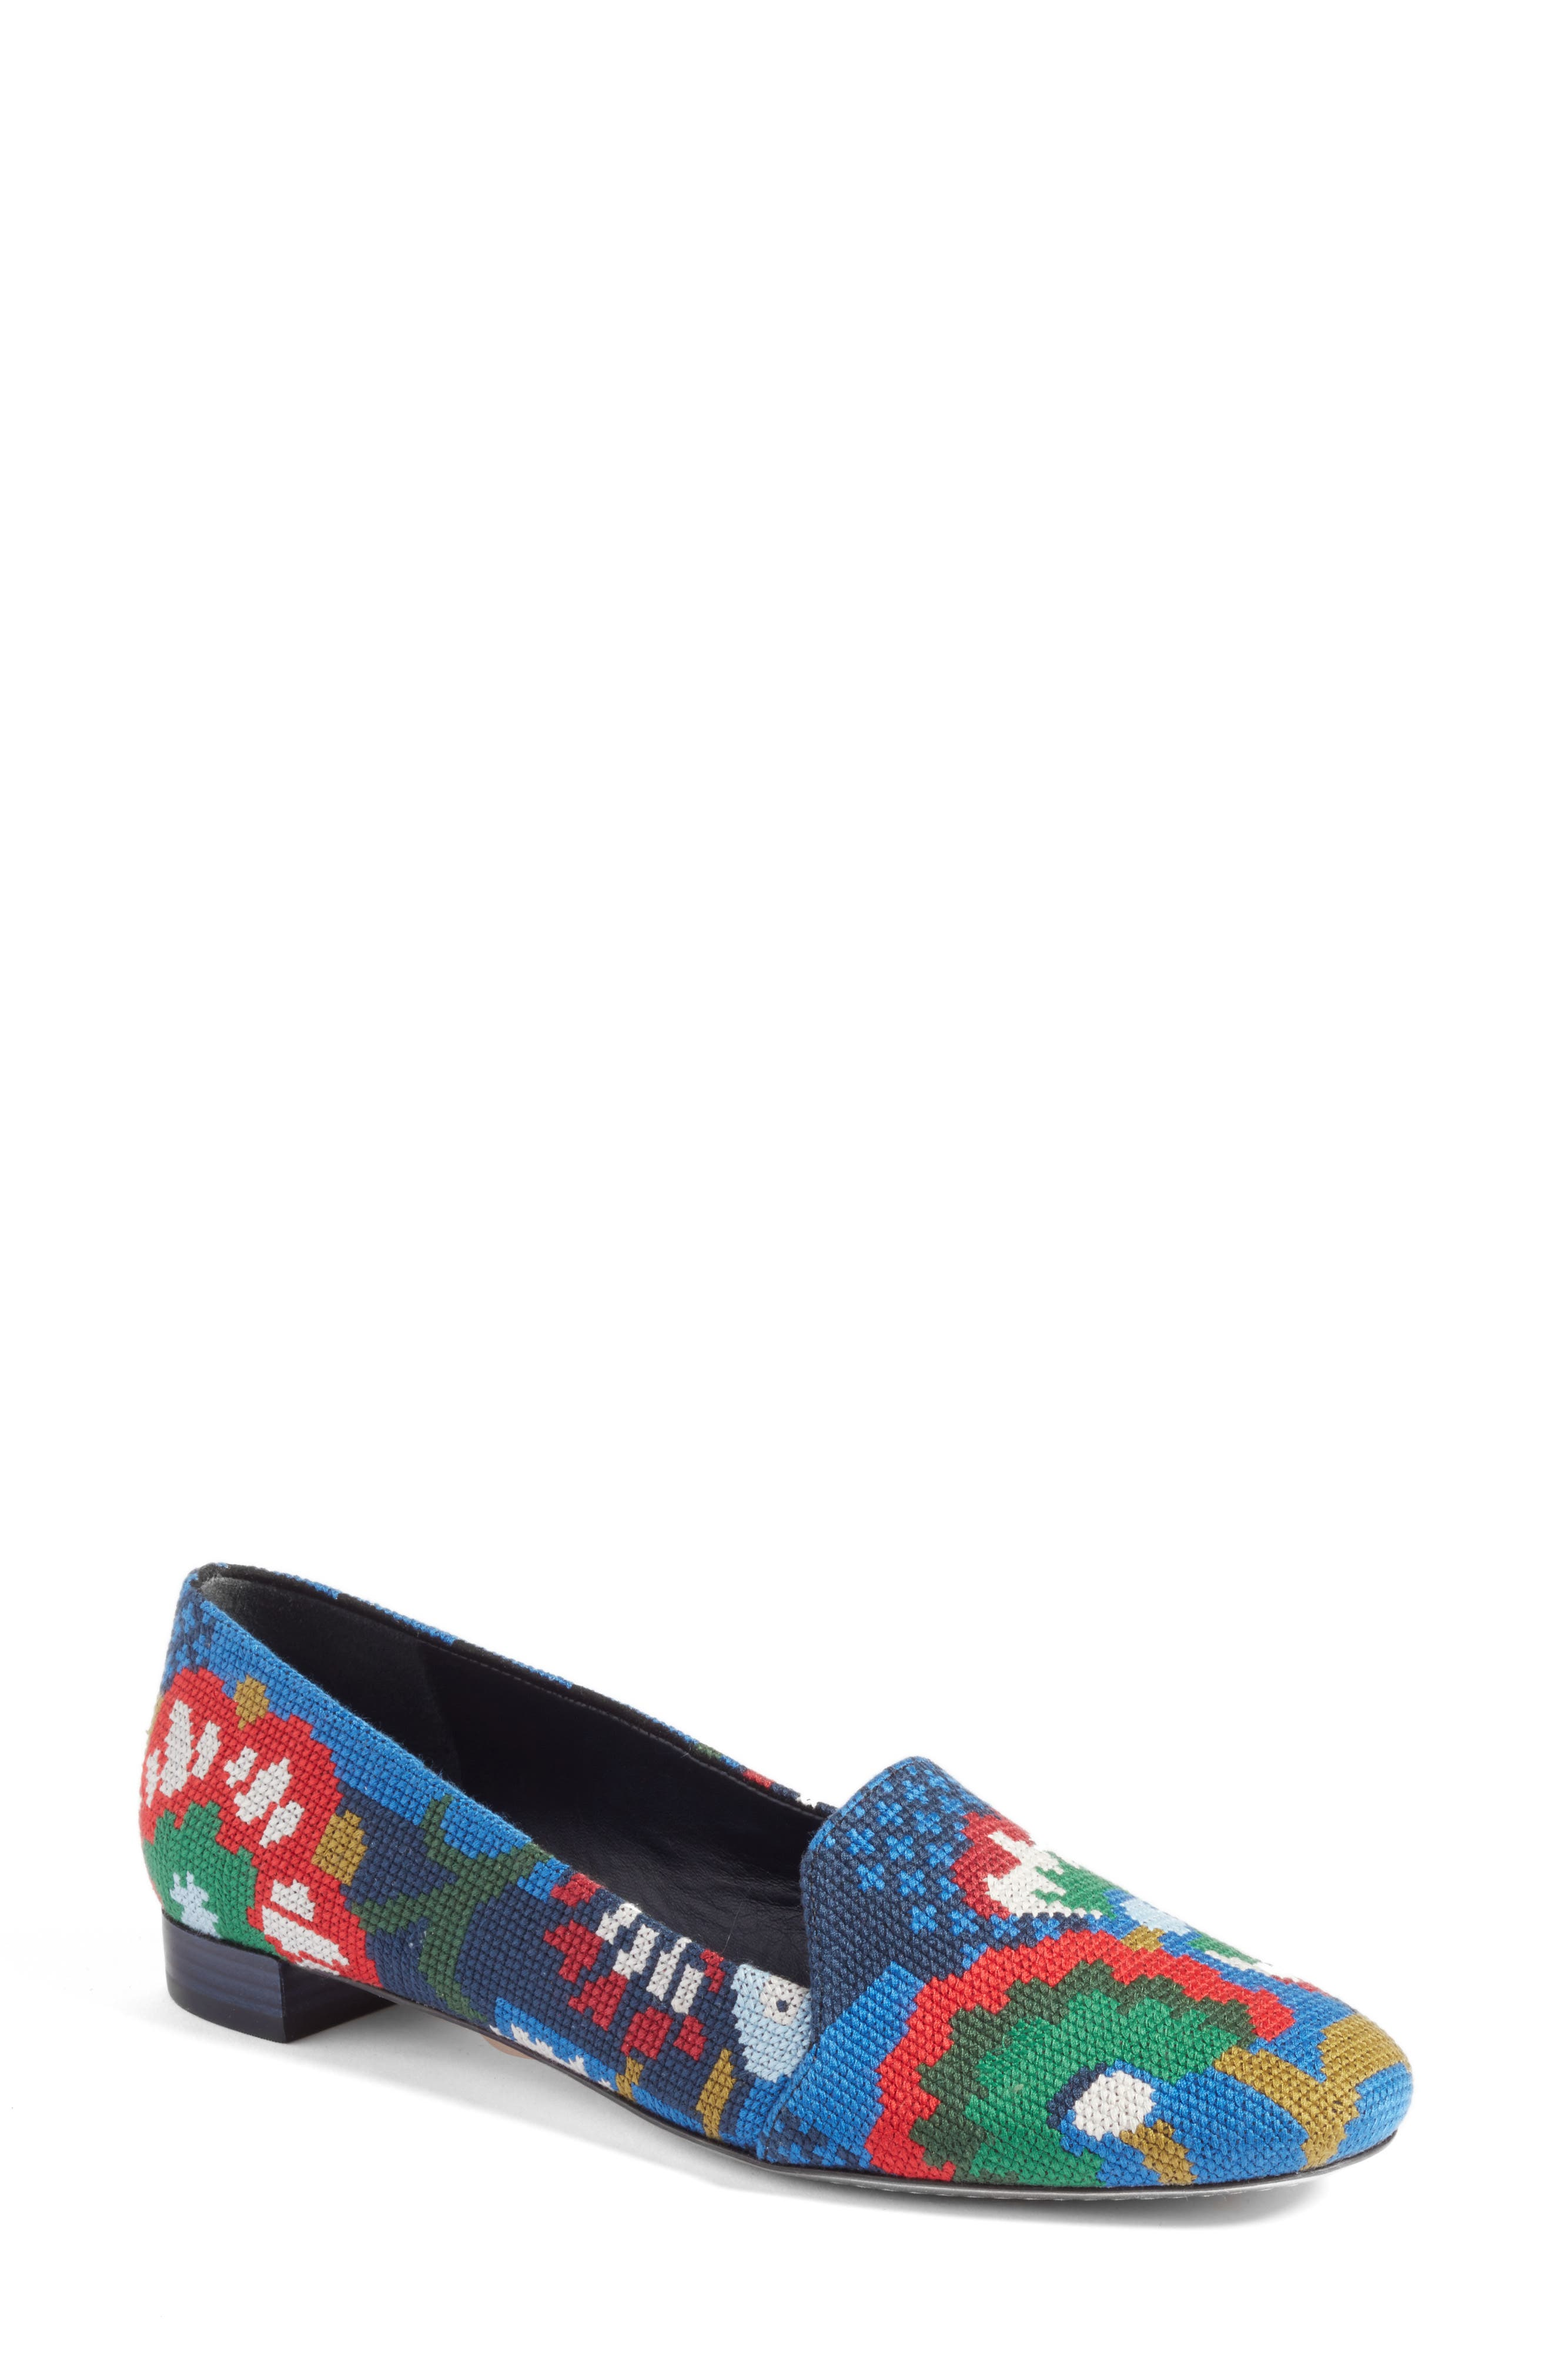 Main Image - Tory Burch Sadie Floral Cross Stitch Loafer (Women)